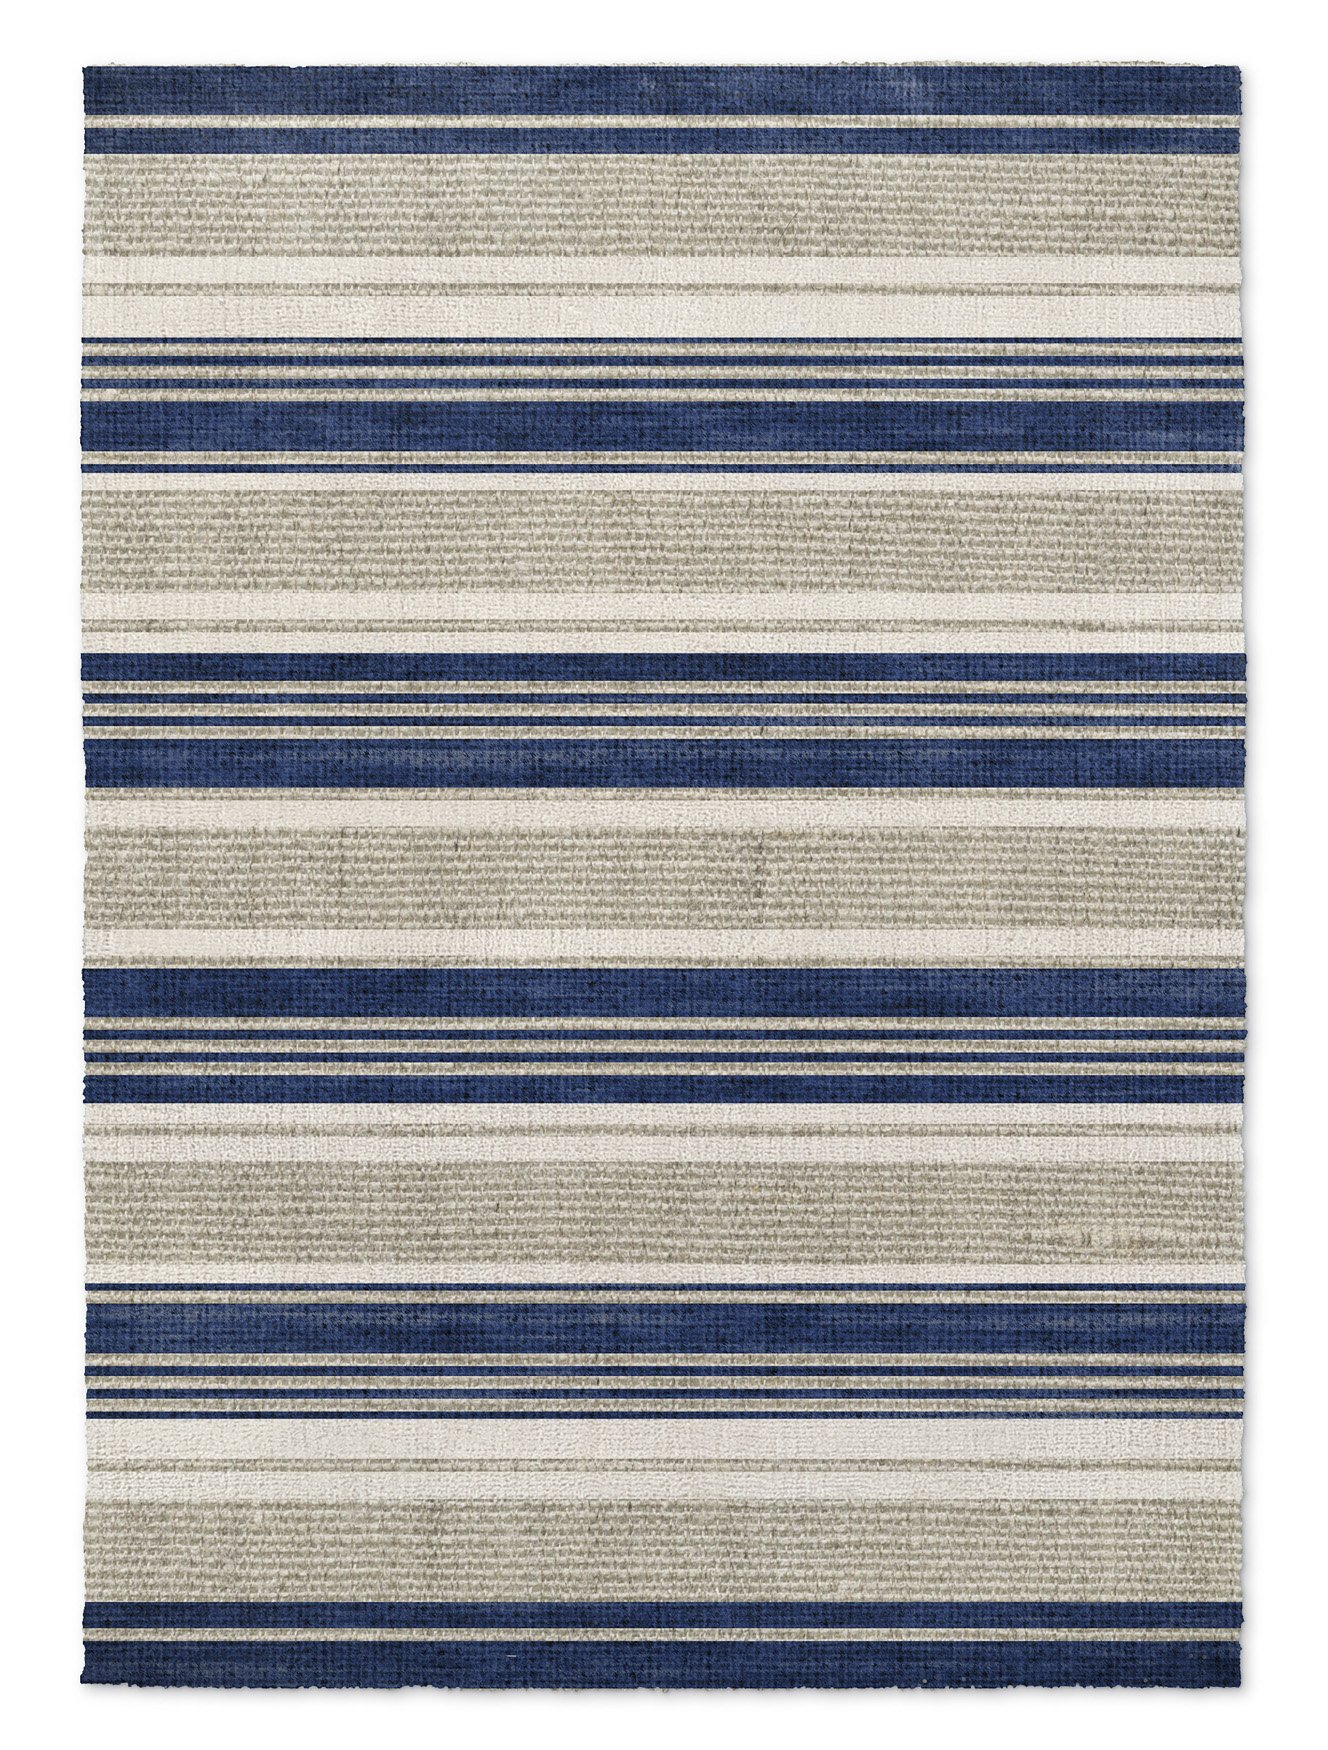 KAVKA Designs Chatham Tan Area Rug, (Blue/Grey) - SALTWATER Collection, Size: 8x10x.5 - (TELAVC8131RUG810)